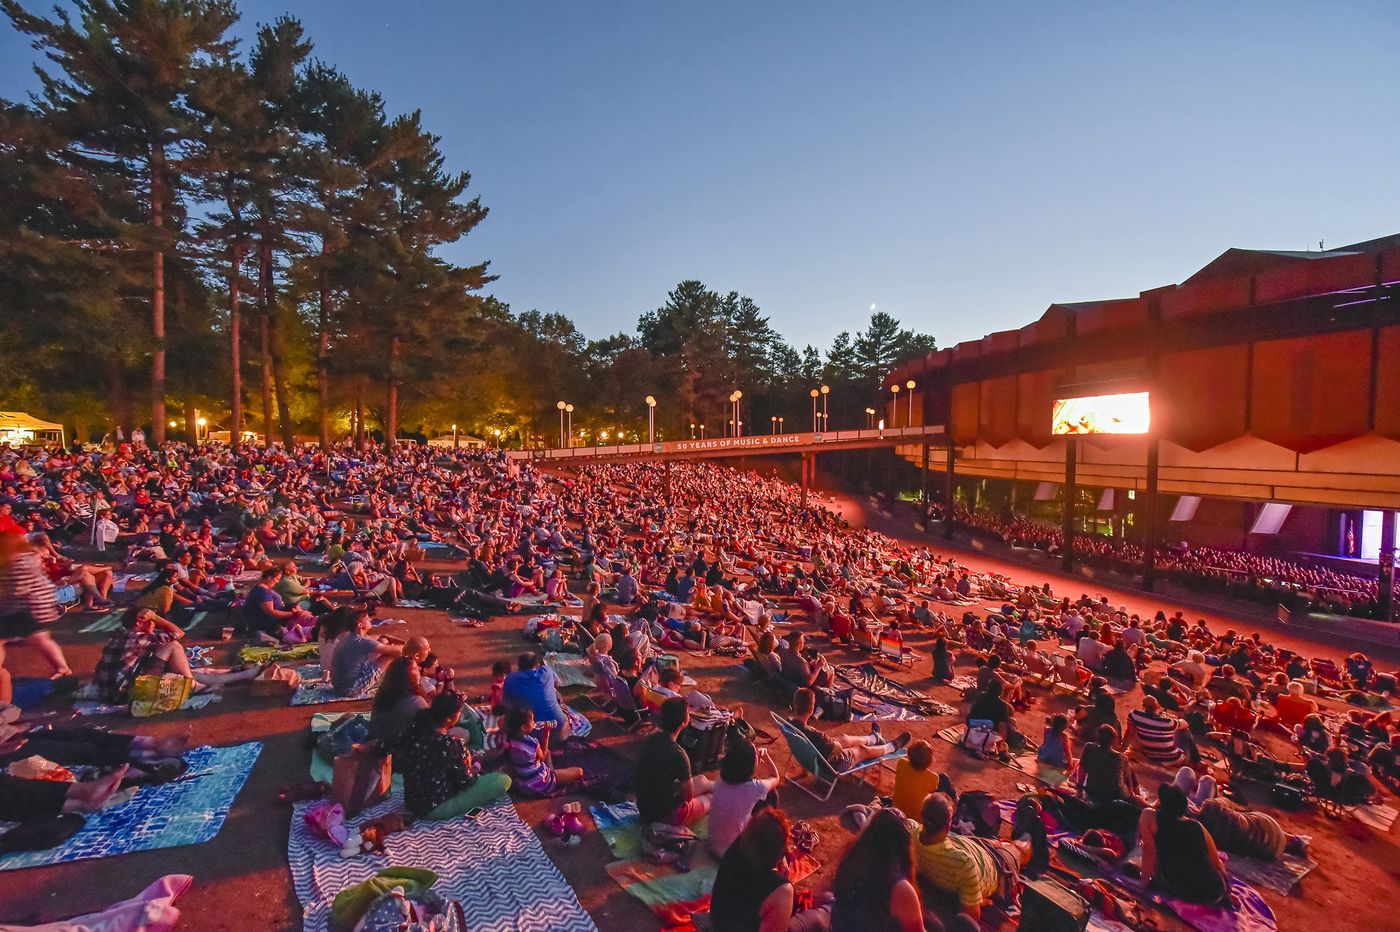 Philadelphia Orchestra to broadcast from Saratoga Springs, N.Y. on WRTI-FM for first time